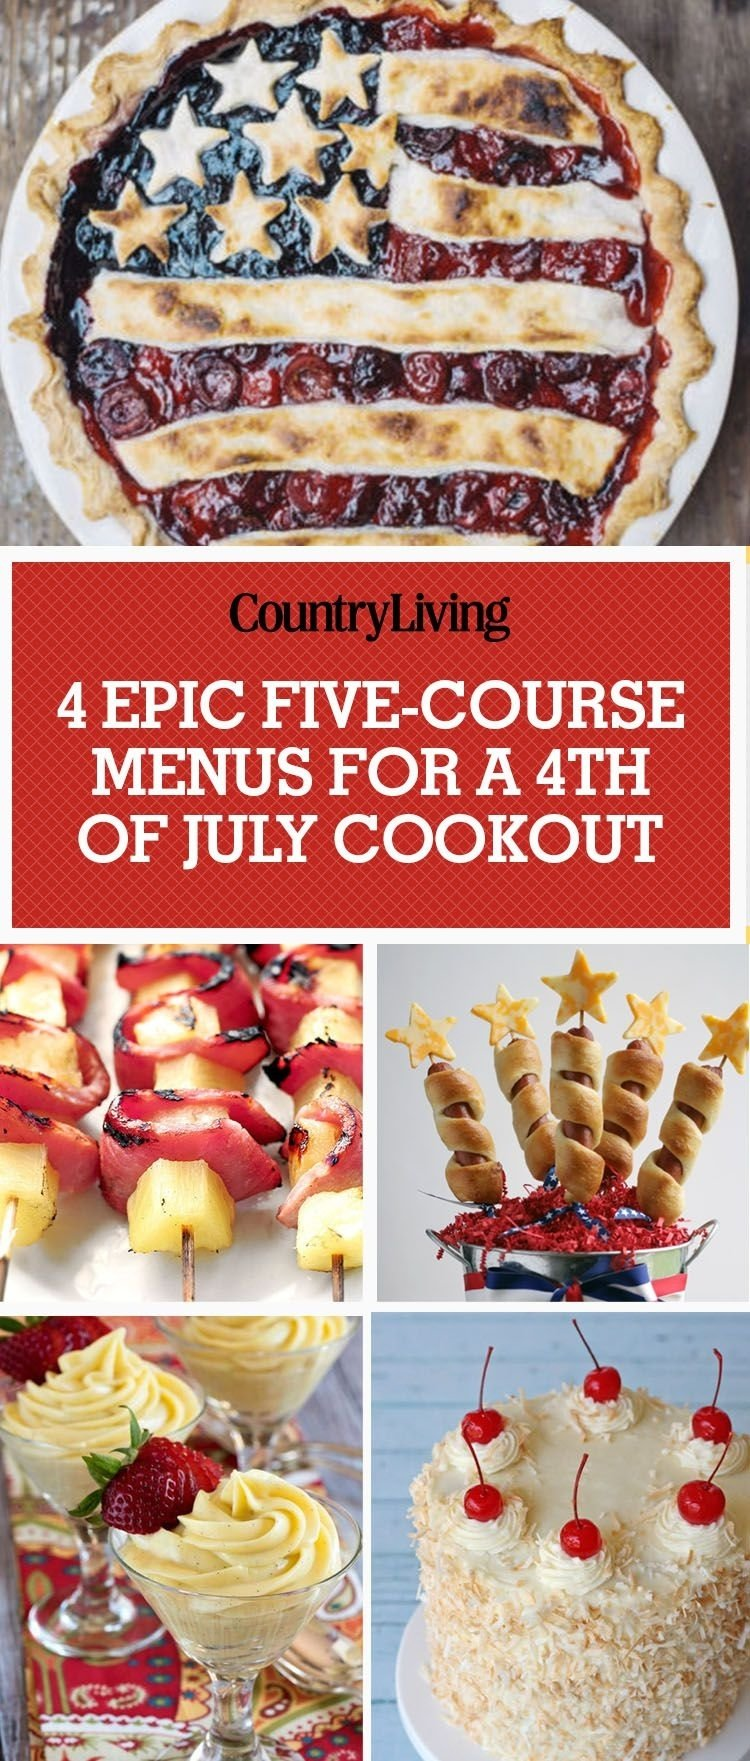 10 Ideal Fourth Of July Cookout Ideas 4th of july menu ideas 4 five course fourth of july dinner menus 2020